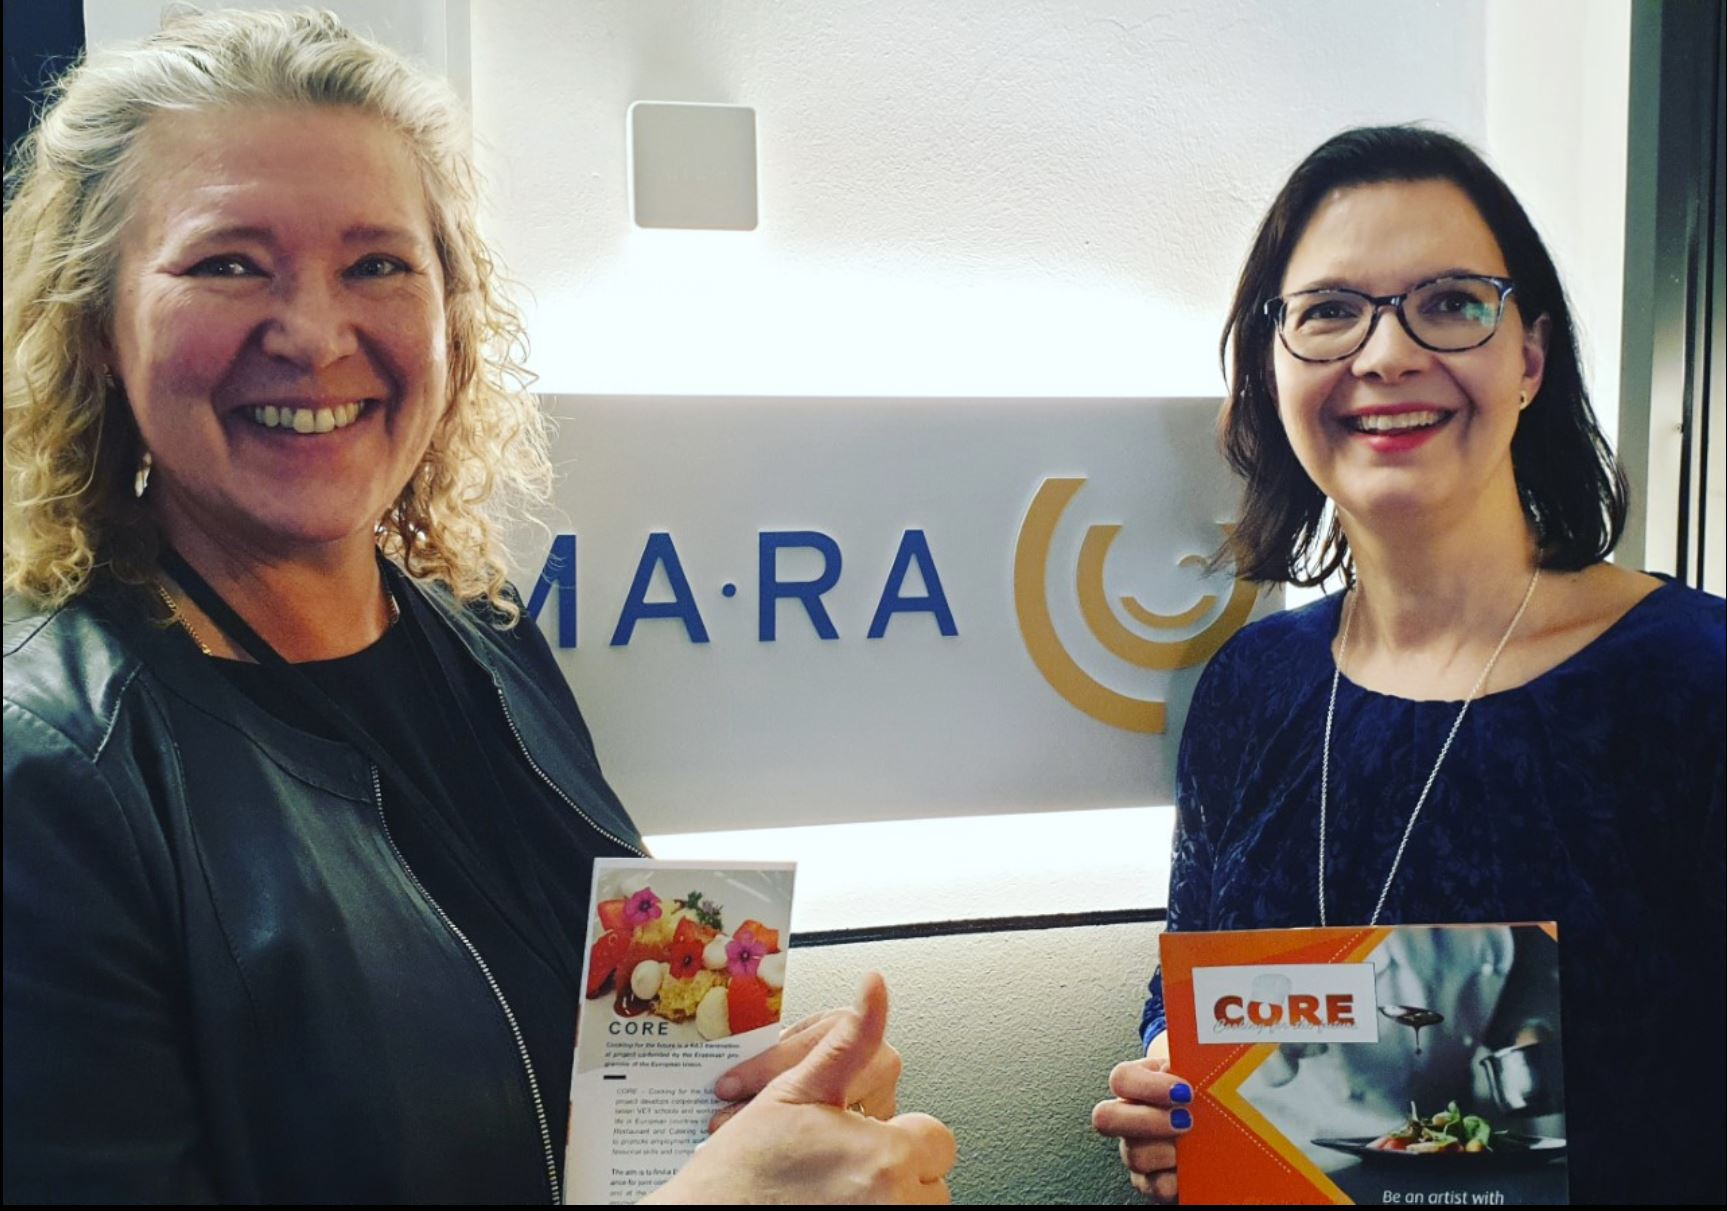 CORE project research was presented in the meeting at The Finnish Hospitality Association (MaRa)